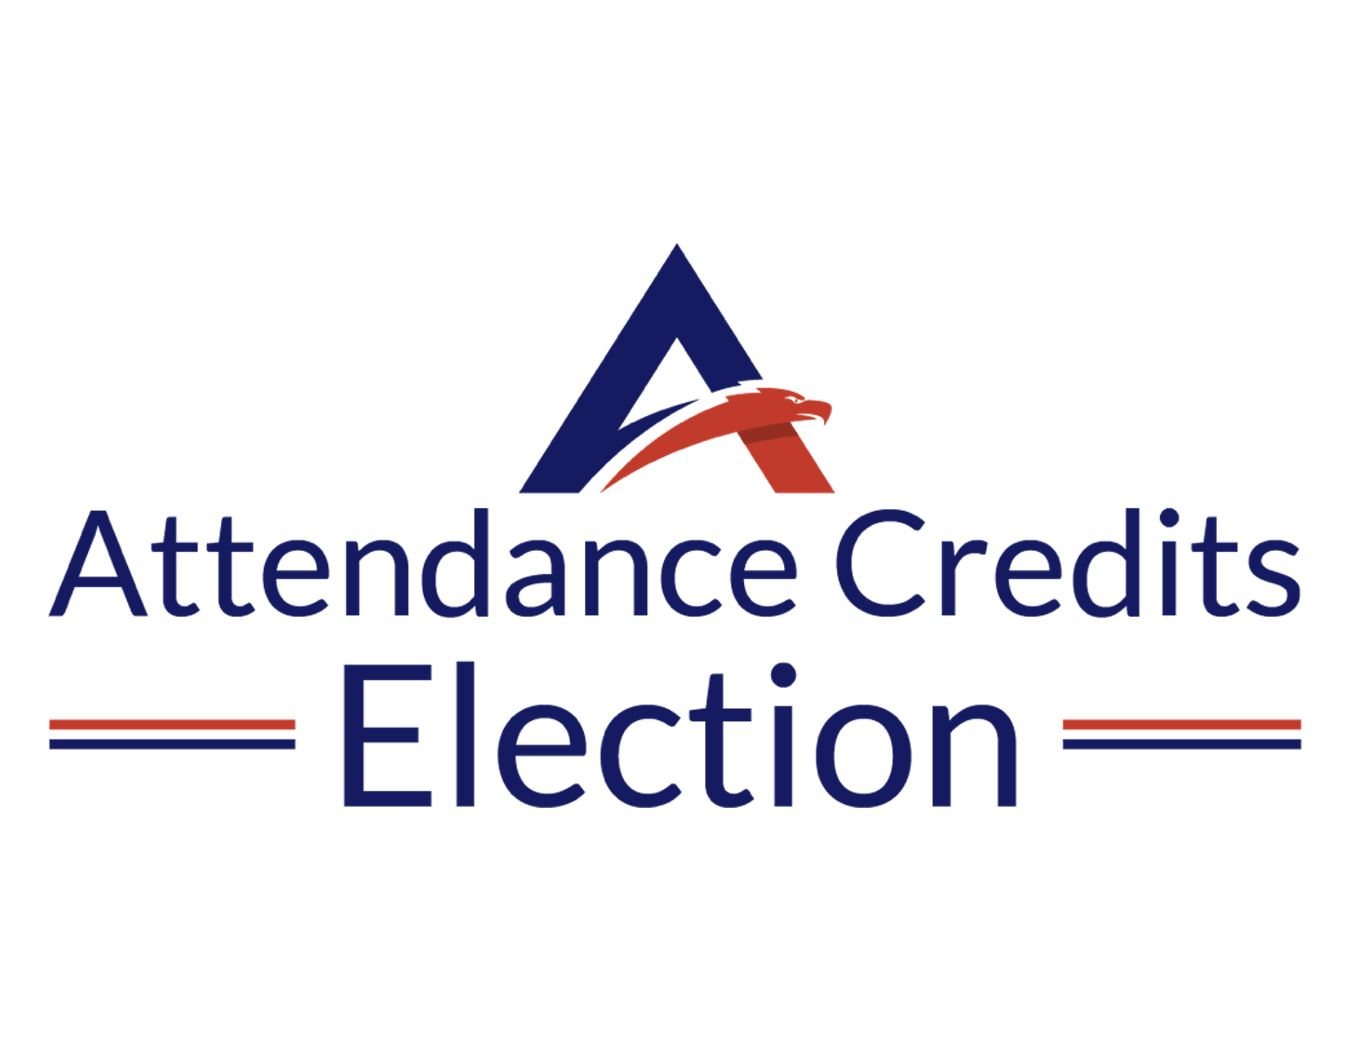 Special Attendance Credits Election Called